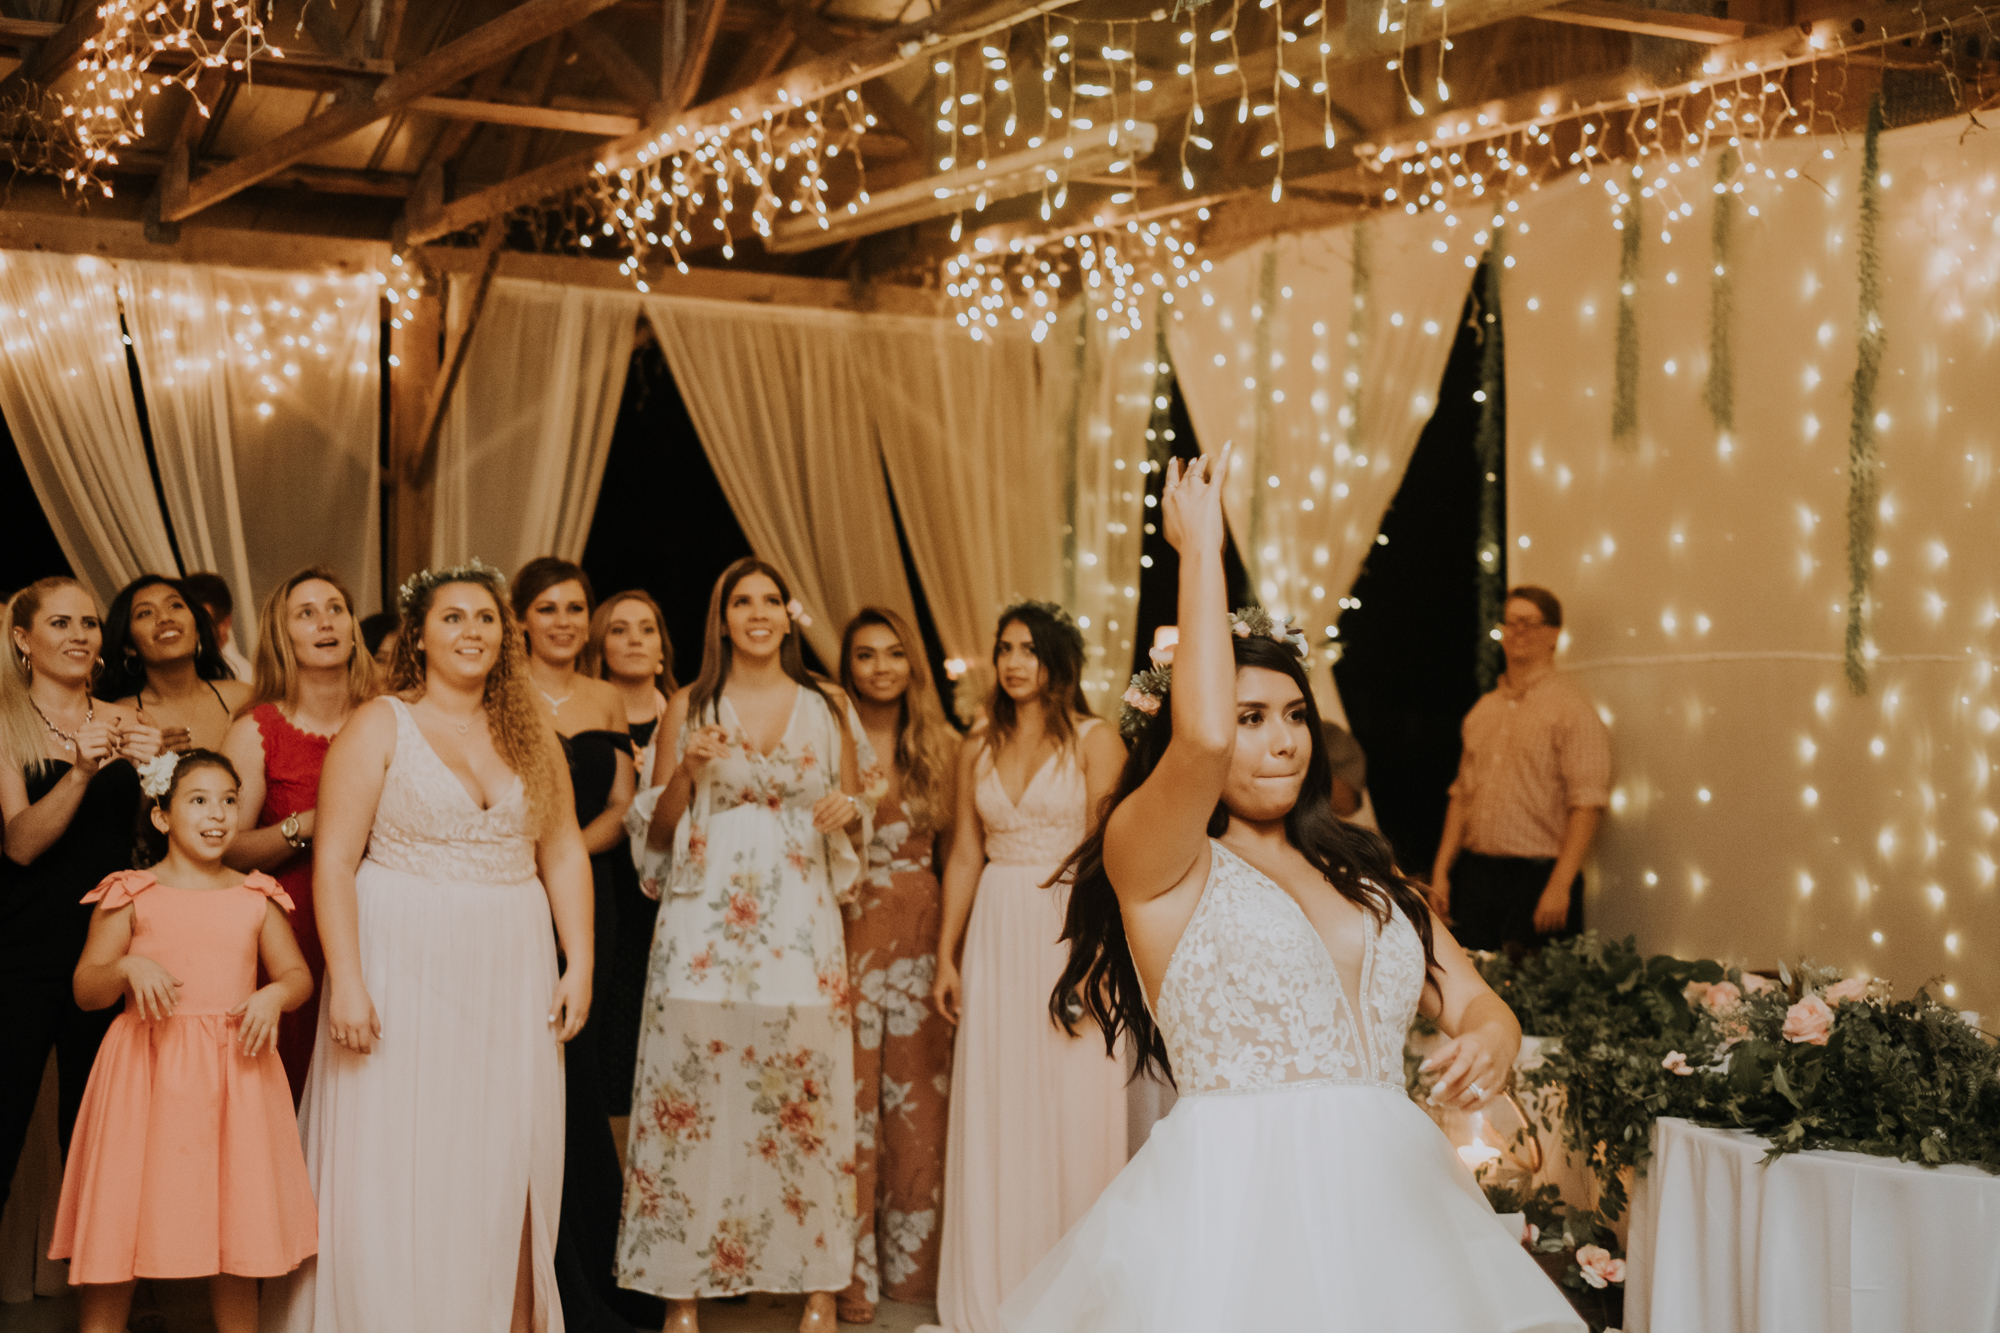 bouquet toss | boho bouquet toss | boho wedding reception | Florida wedding | romantic sarasota wedding